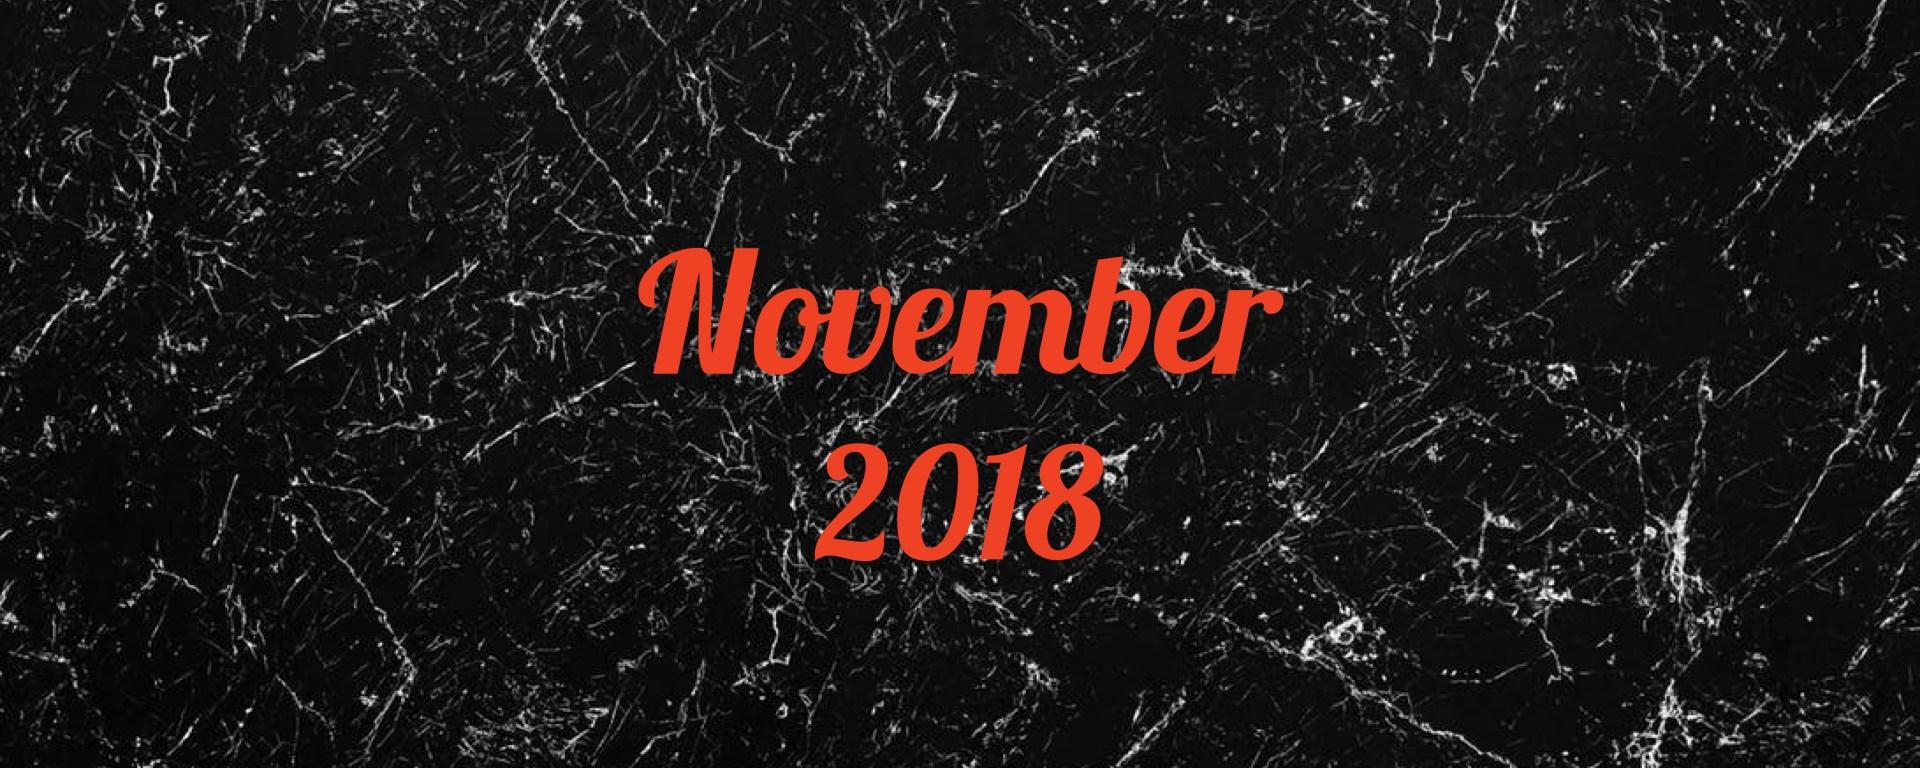 November 2018 in orange text on black and white marble background